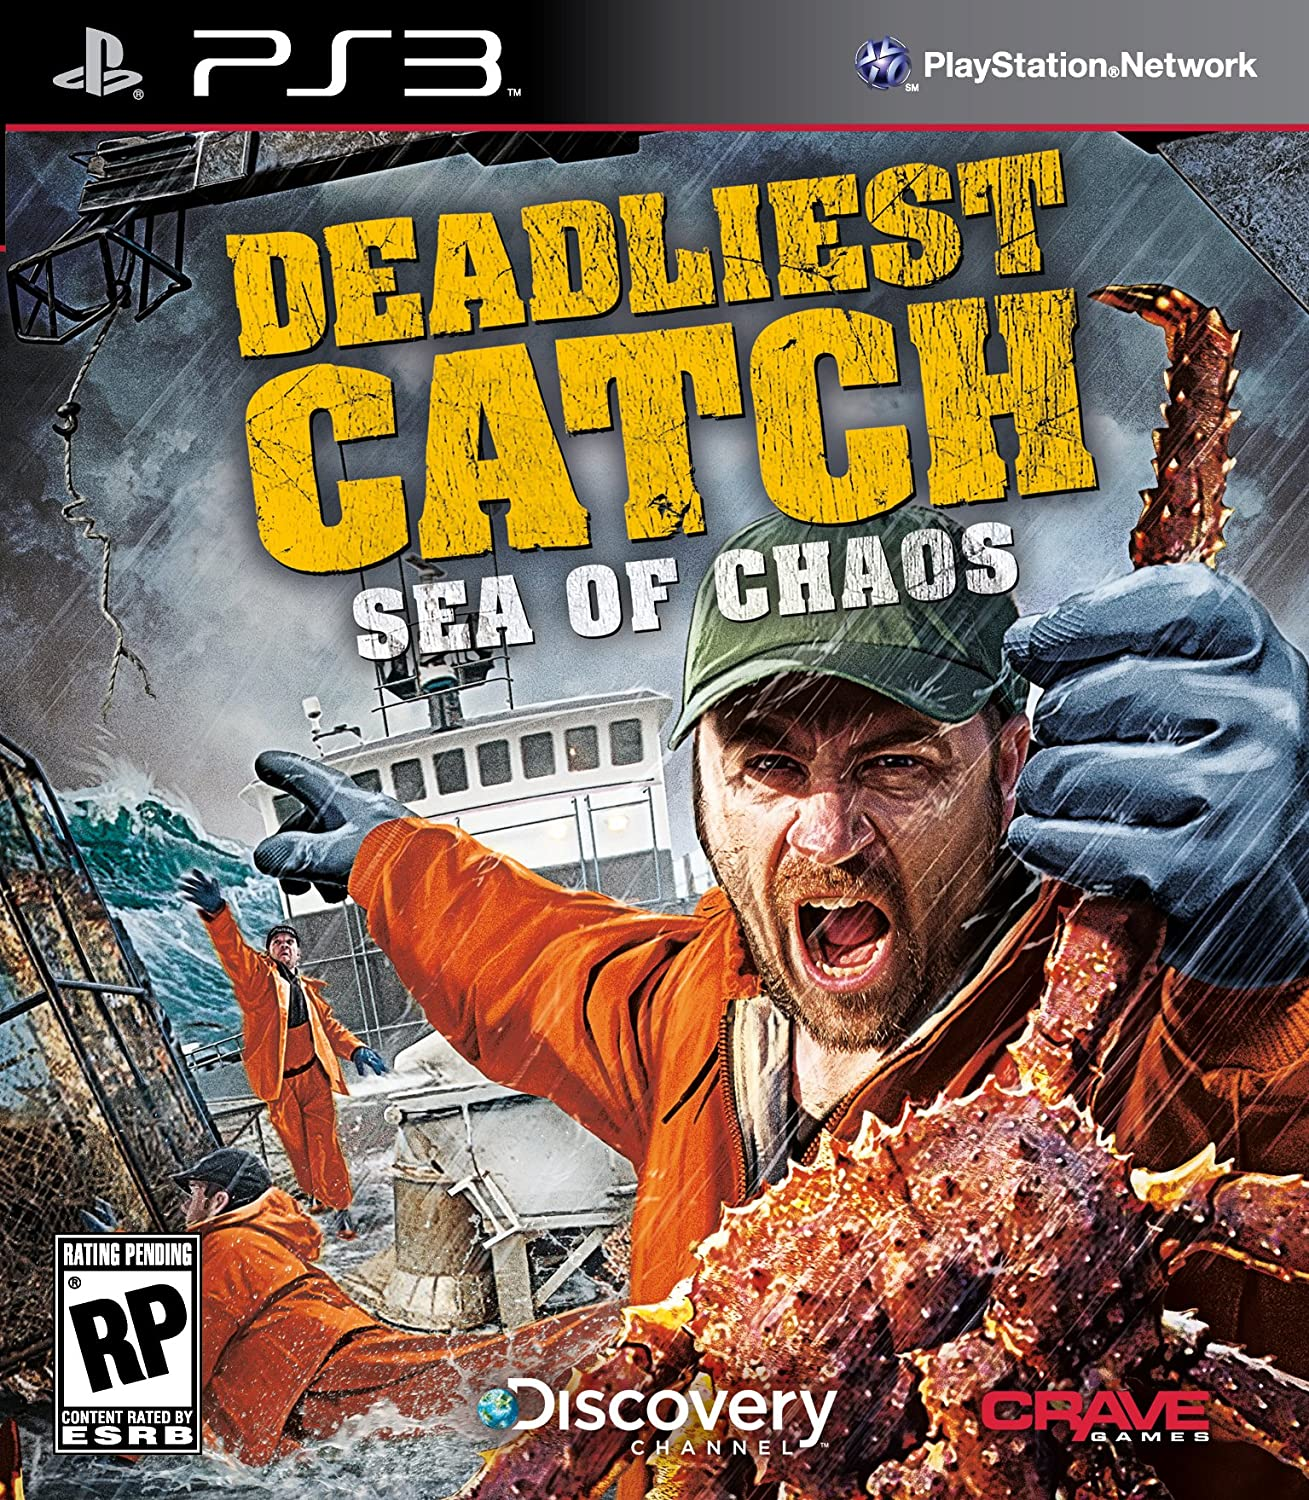 Deadliest Catch: Sea of Chaos with Playstati Move Max 77% 2021 model OFF - Compatible